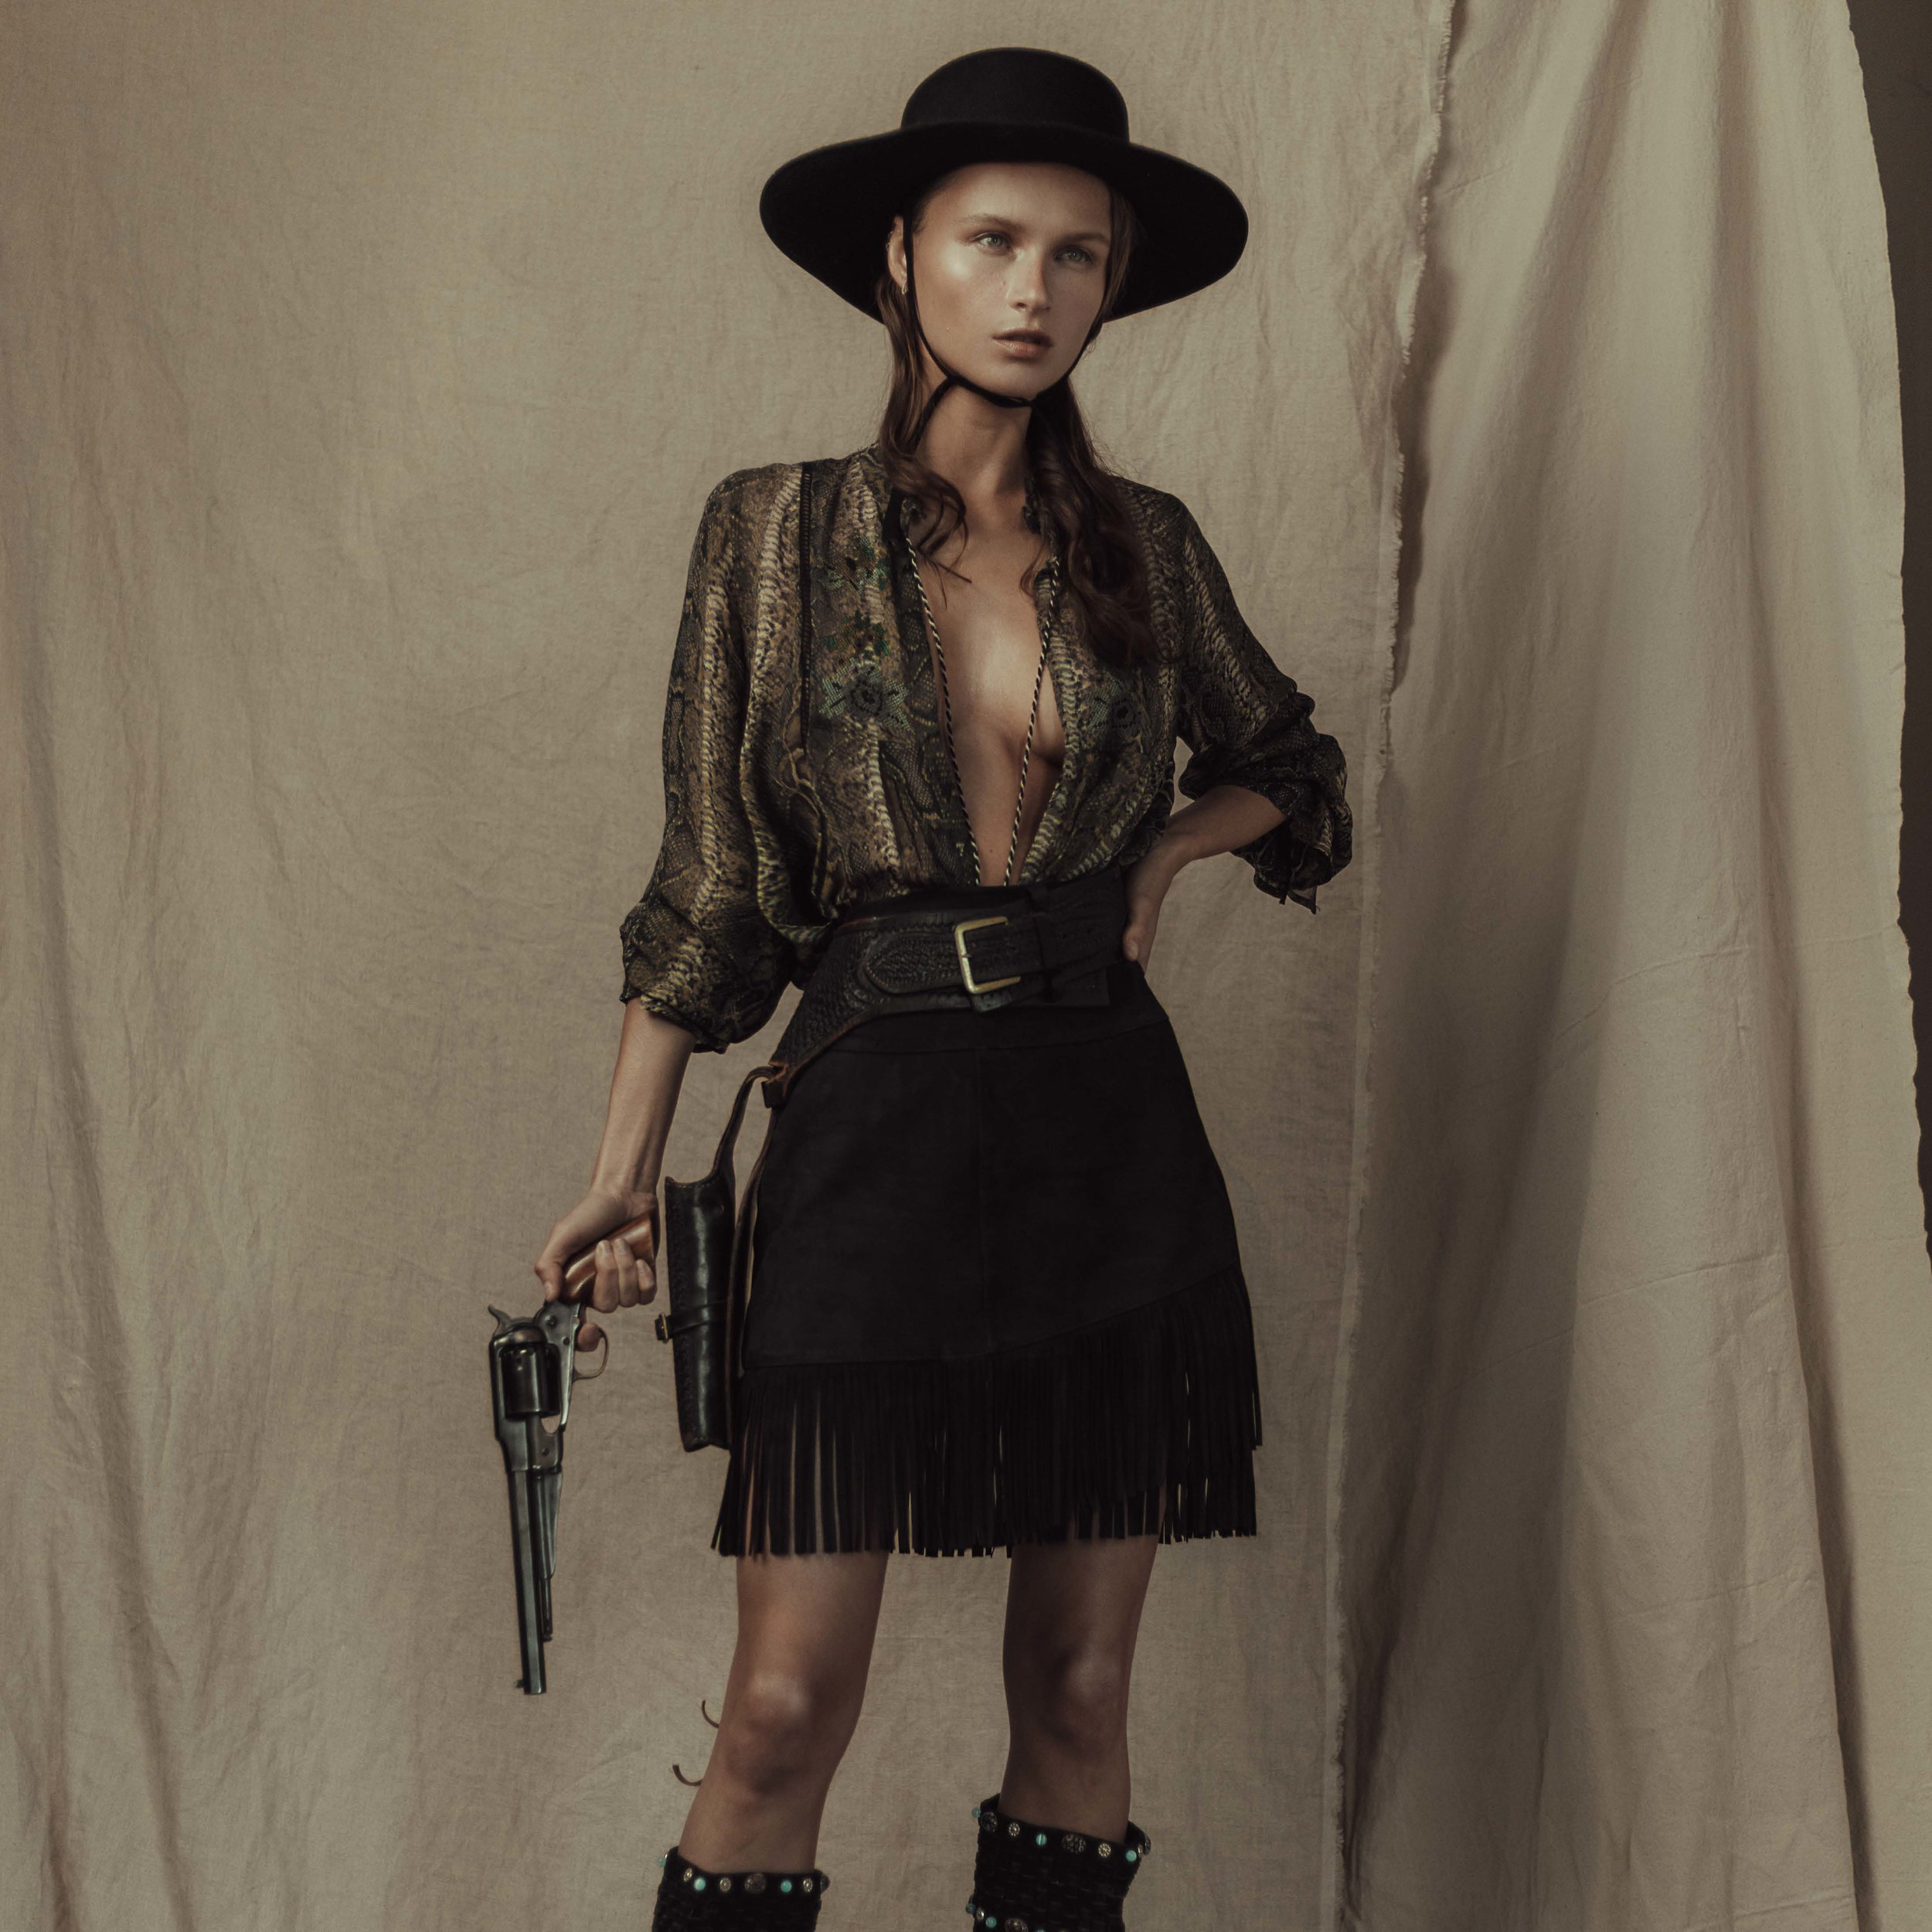 """""""Lone star"""" for ellements mag - A kick ass series by Rex Yu & Team for Ellements Magazine! Full of western flare this is a series you do't want to miss!Check It Out!"""